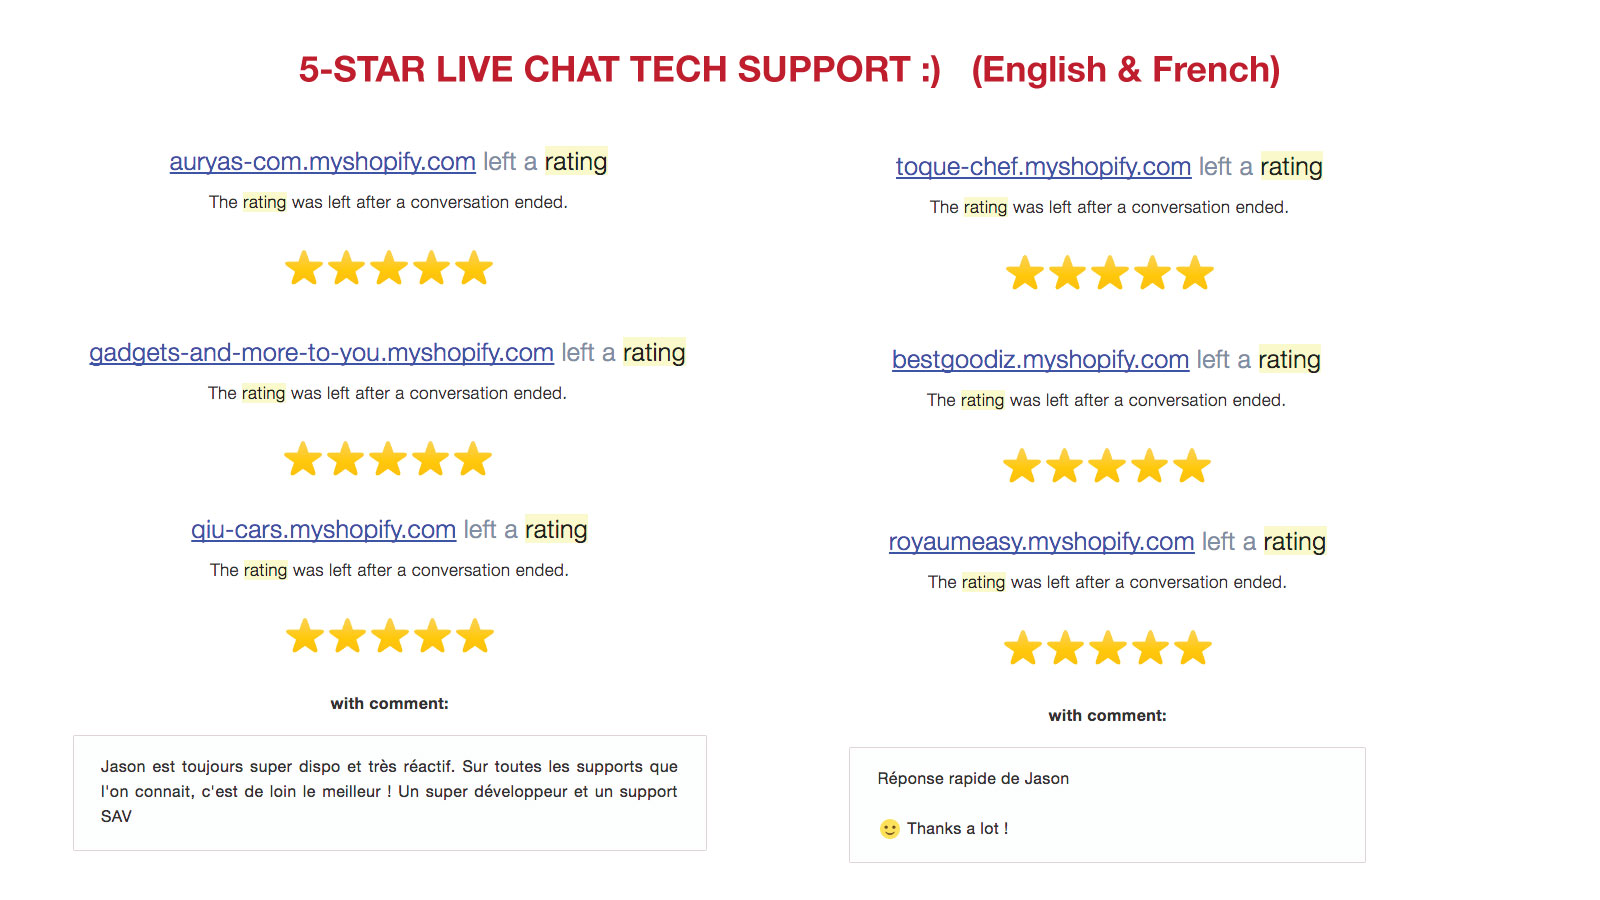 5 star live chat support